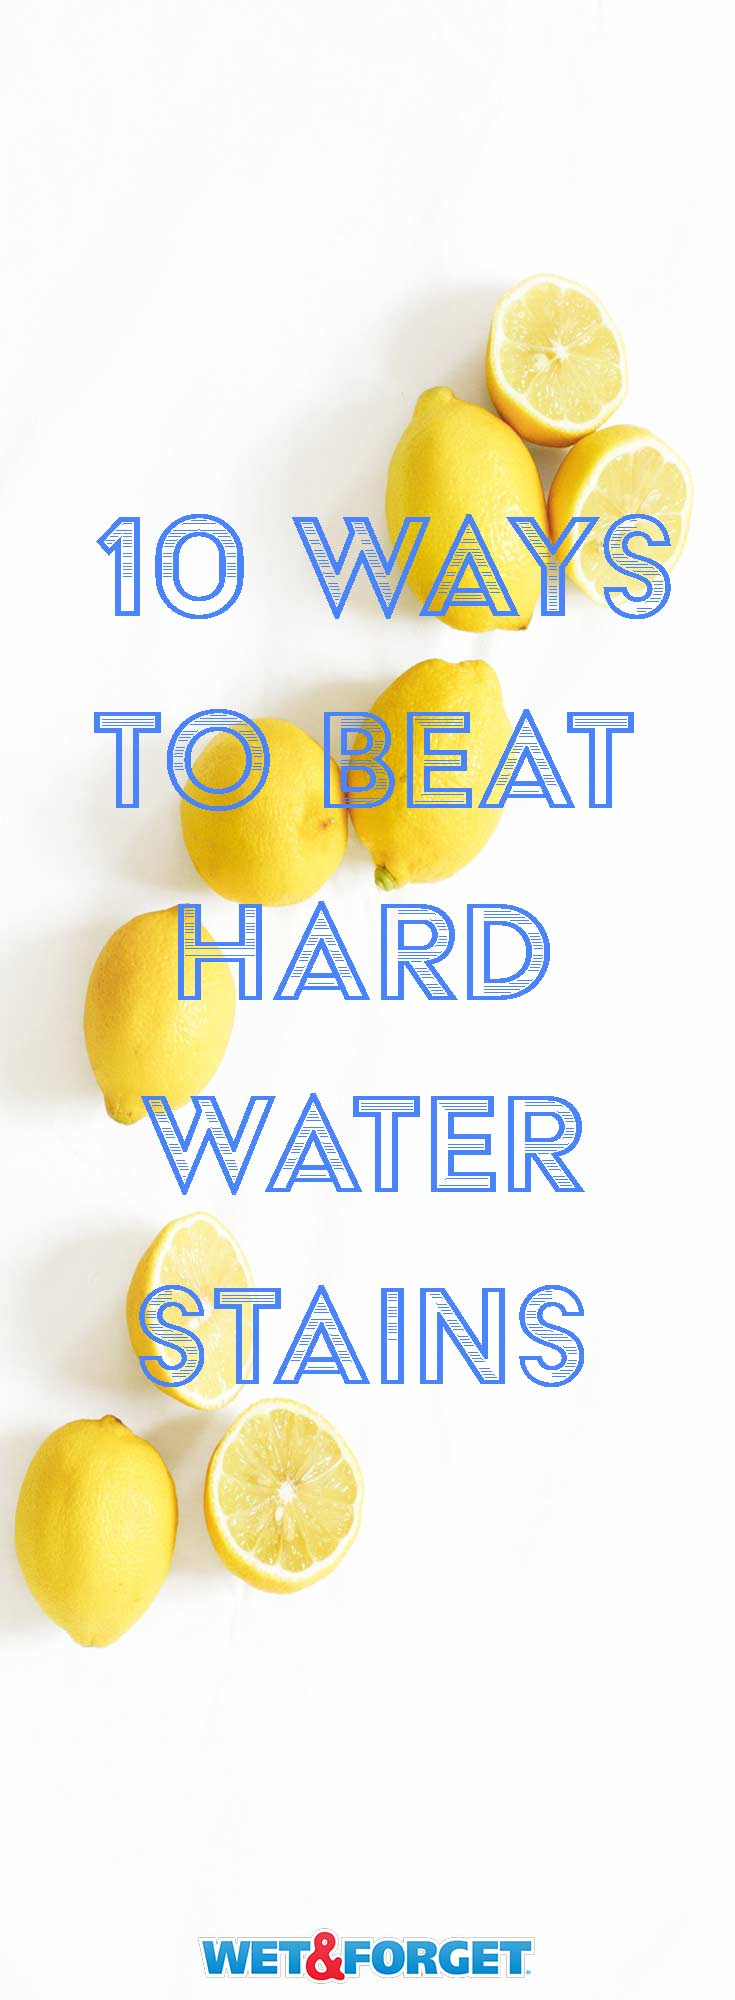 10-ways-to-beat-hard-water-stains-pinterest